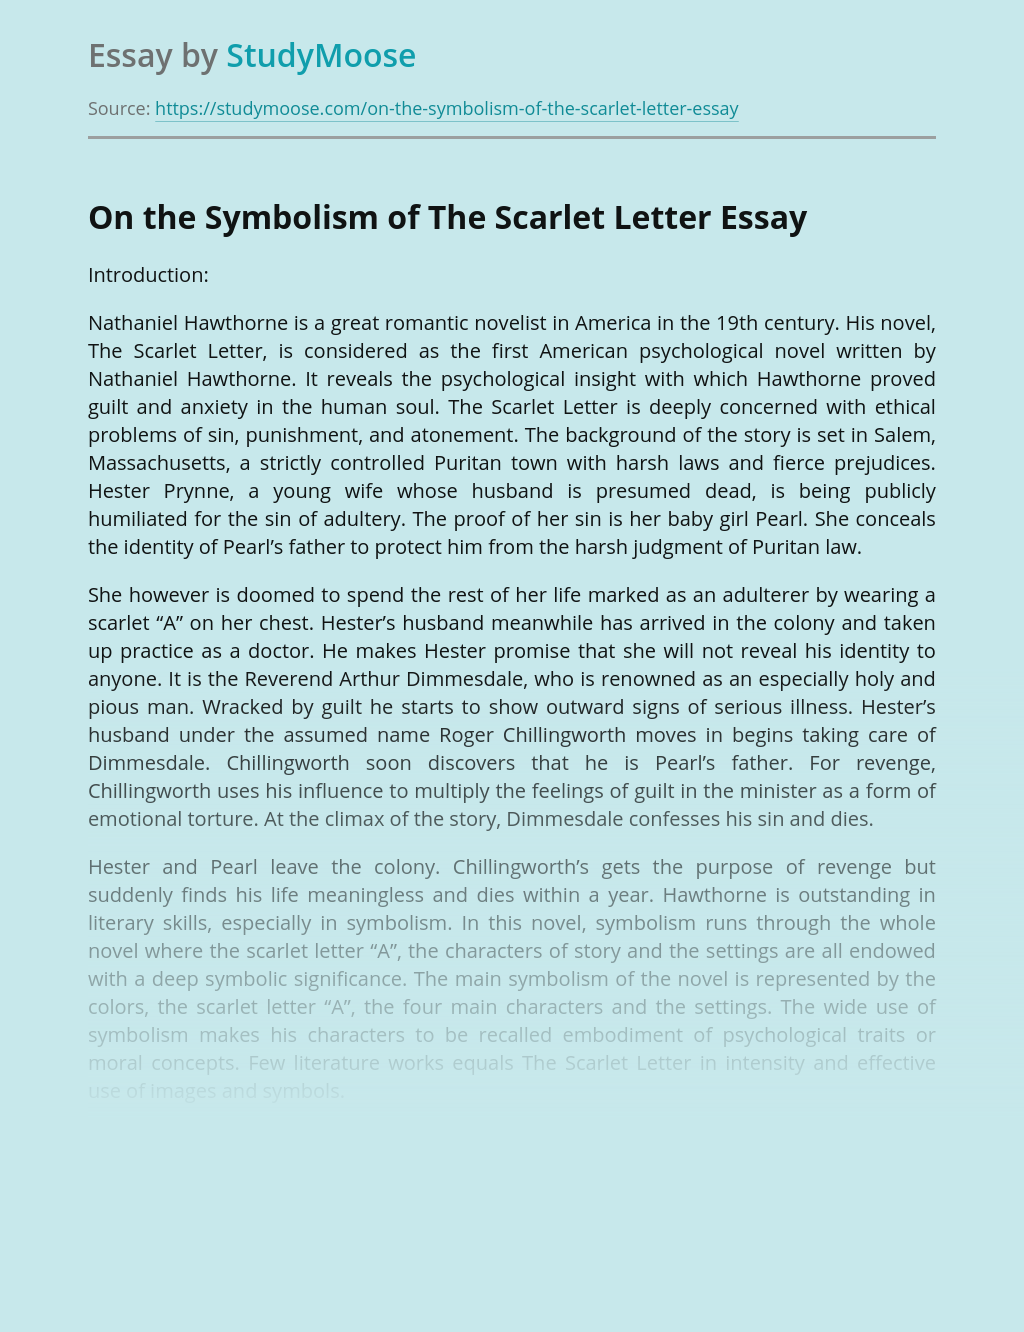 On the Symbolism of The Scarlet Letter